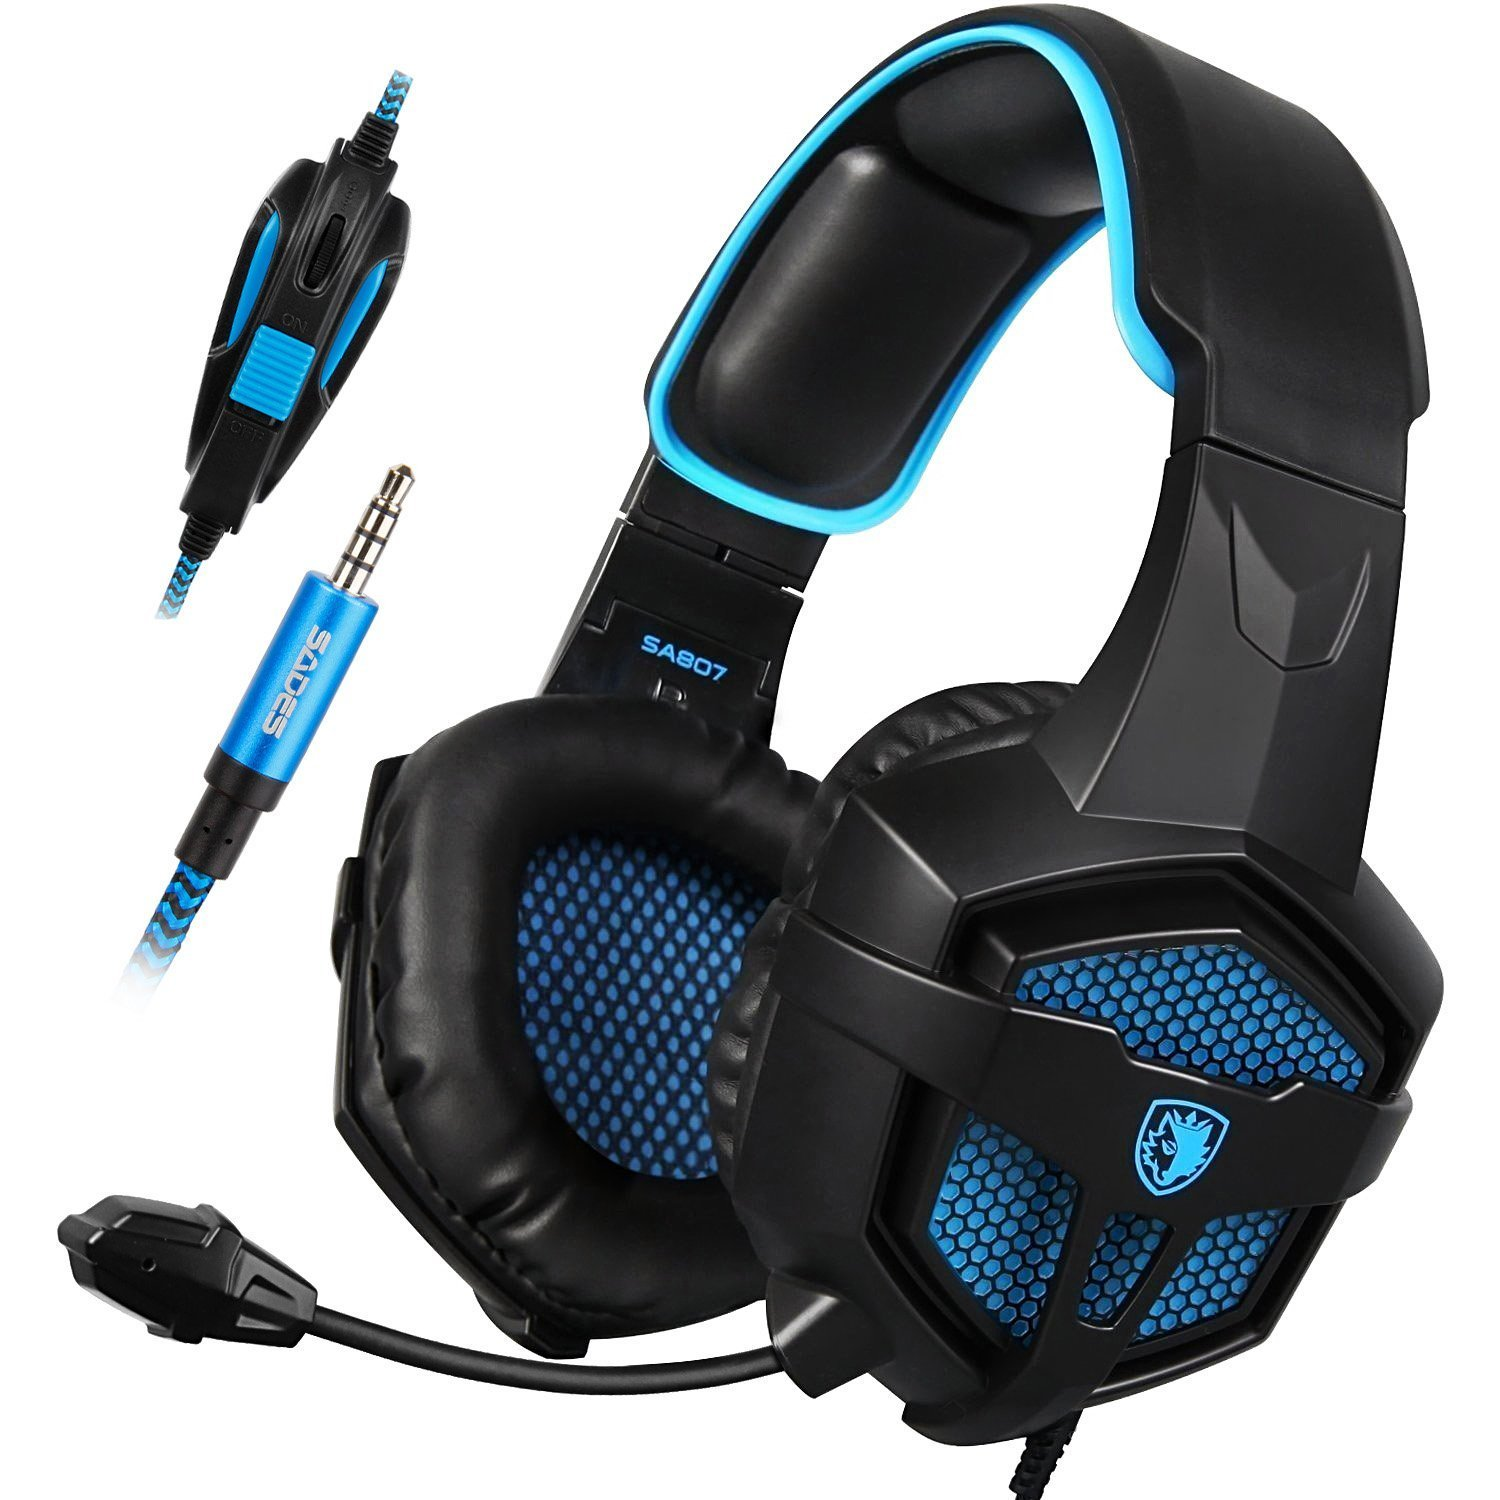 SADES SA807 3.5mm Wired Multi-Platform Stero Sound Gaming Headset Over Ear Gaming Headphones with Mic Volume Control for New Xbox one/PS4/PC/Laptop/Mac/iPad/iPod (Black Blue) by SADES